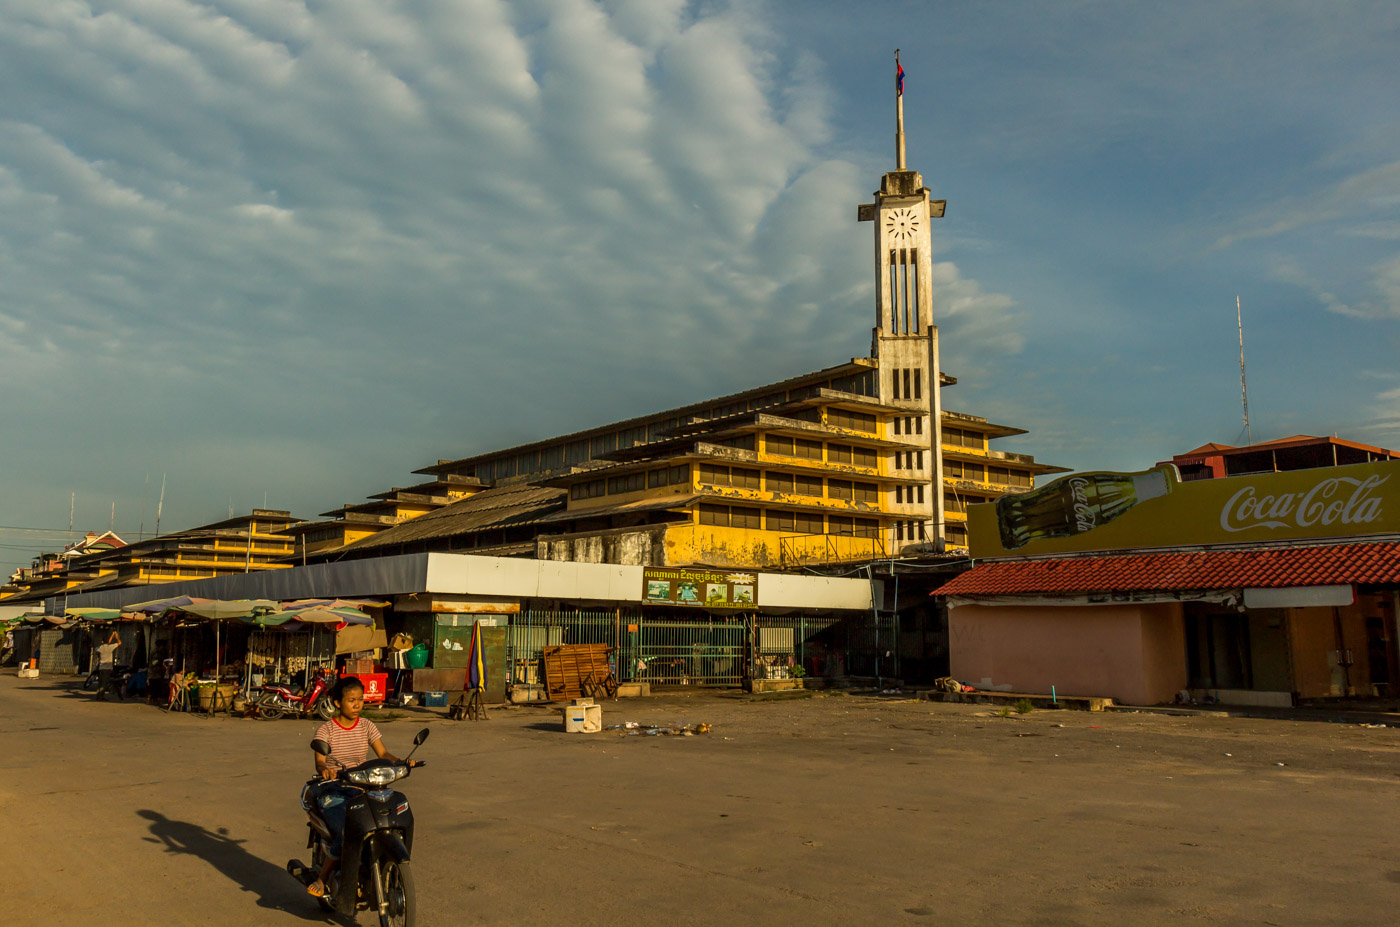 A kid on a motorbike drives past the market.